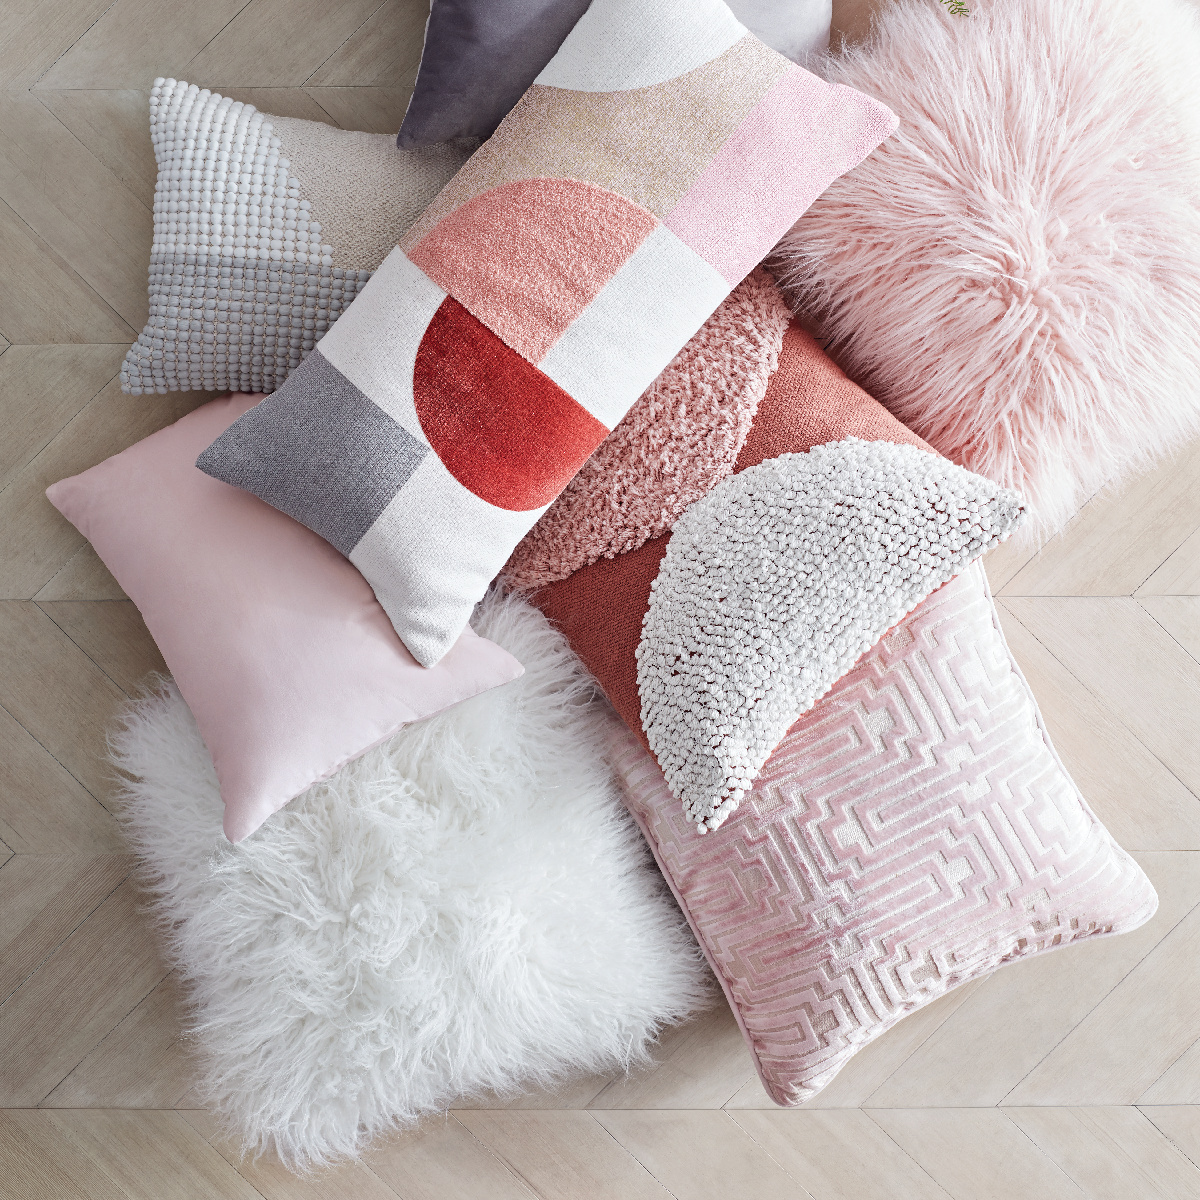 Pile of geometric and colorful pillows